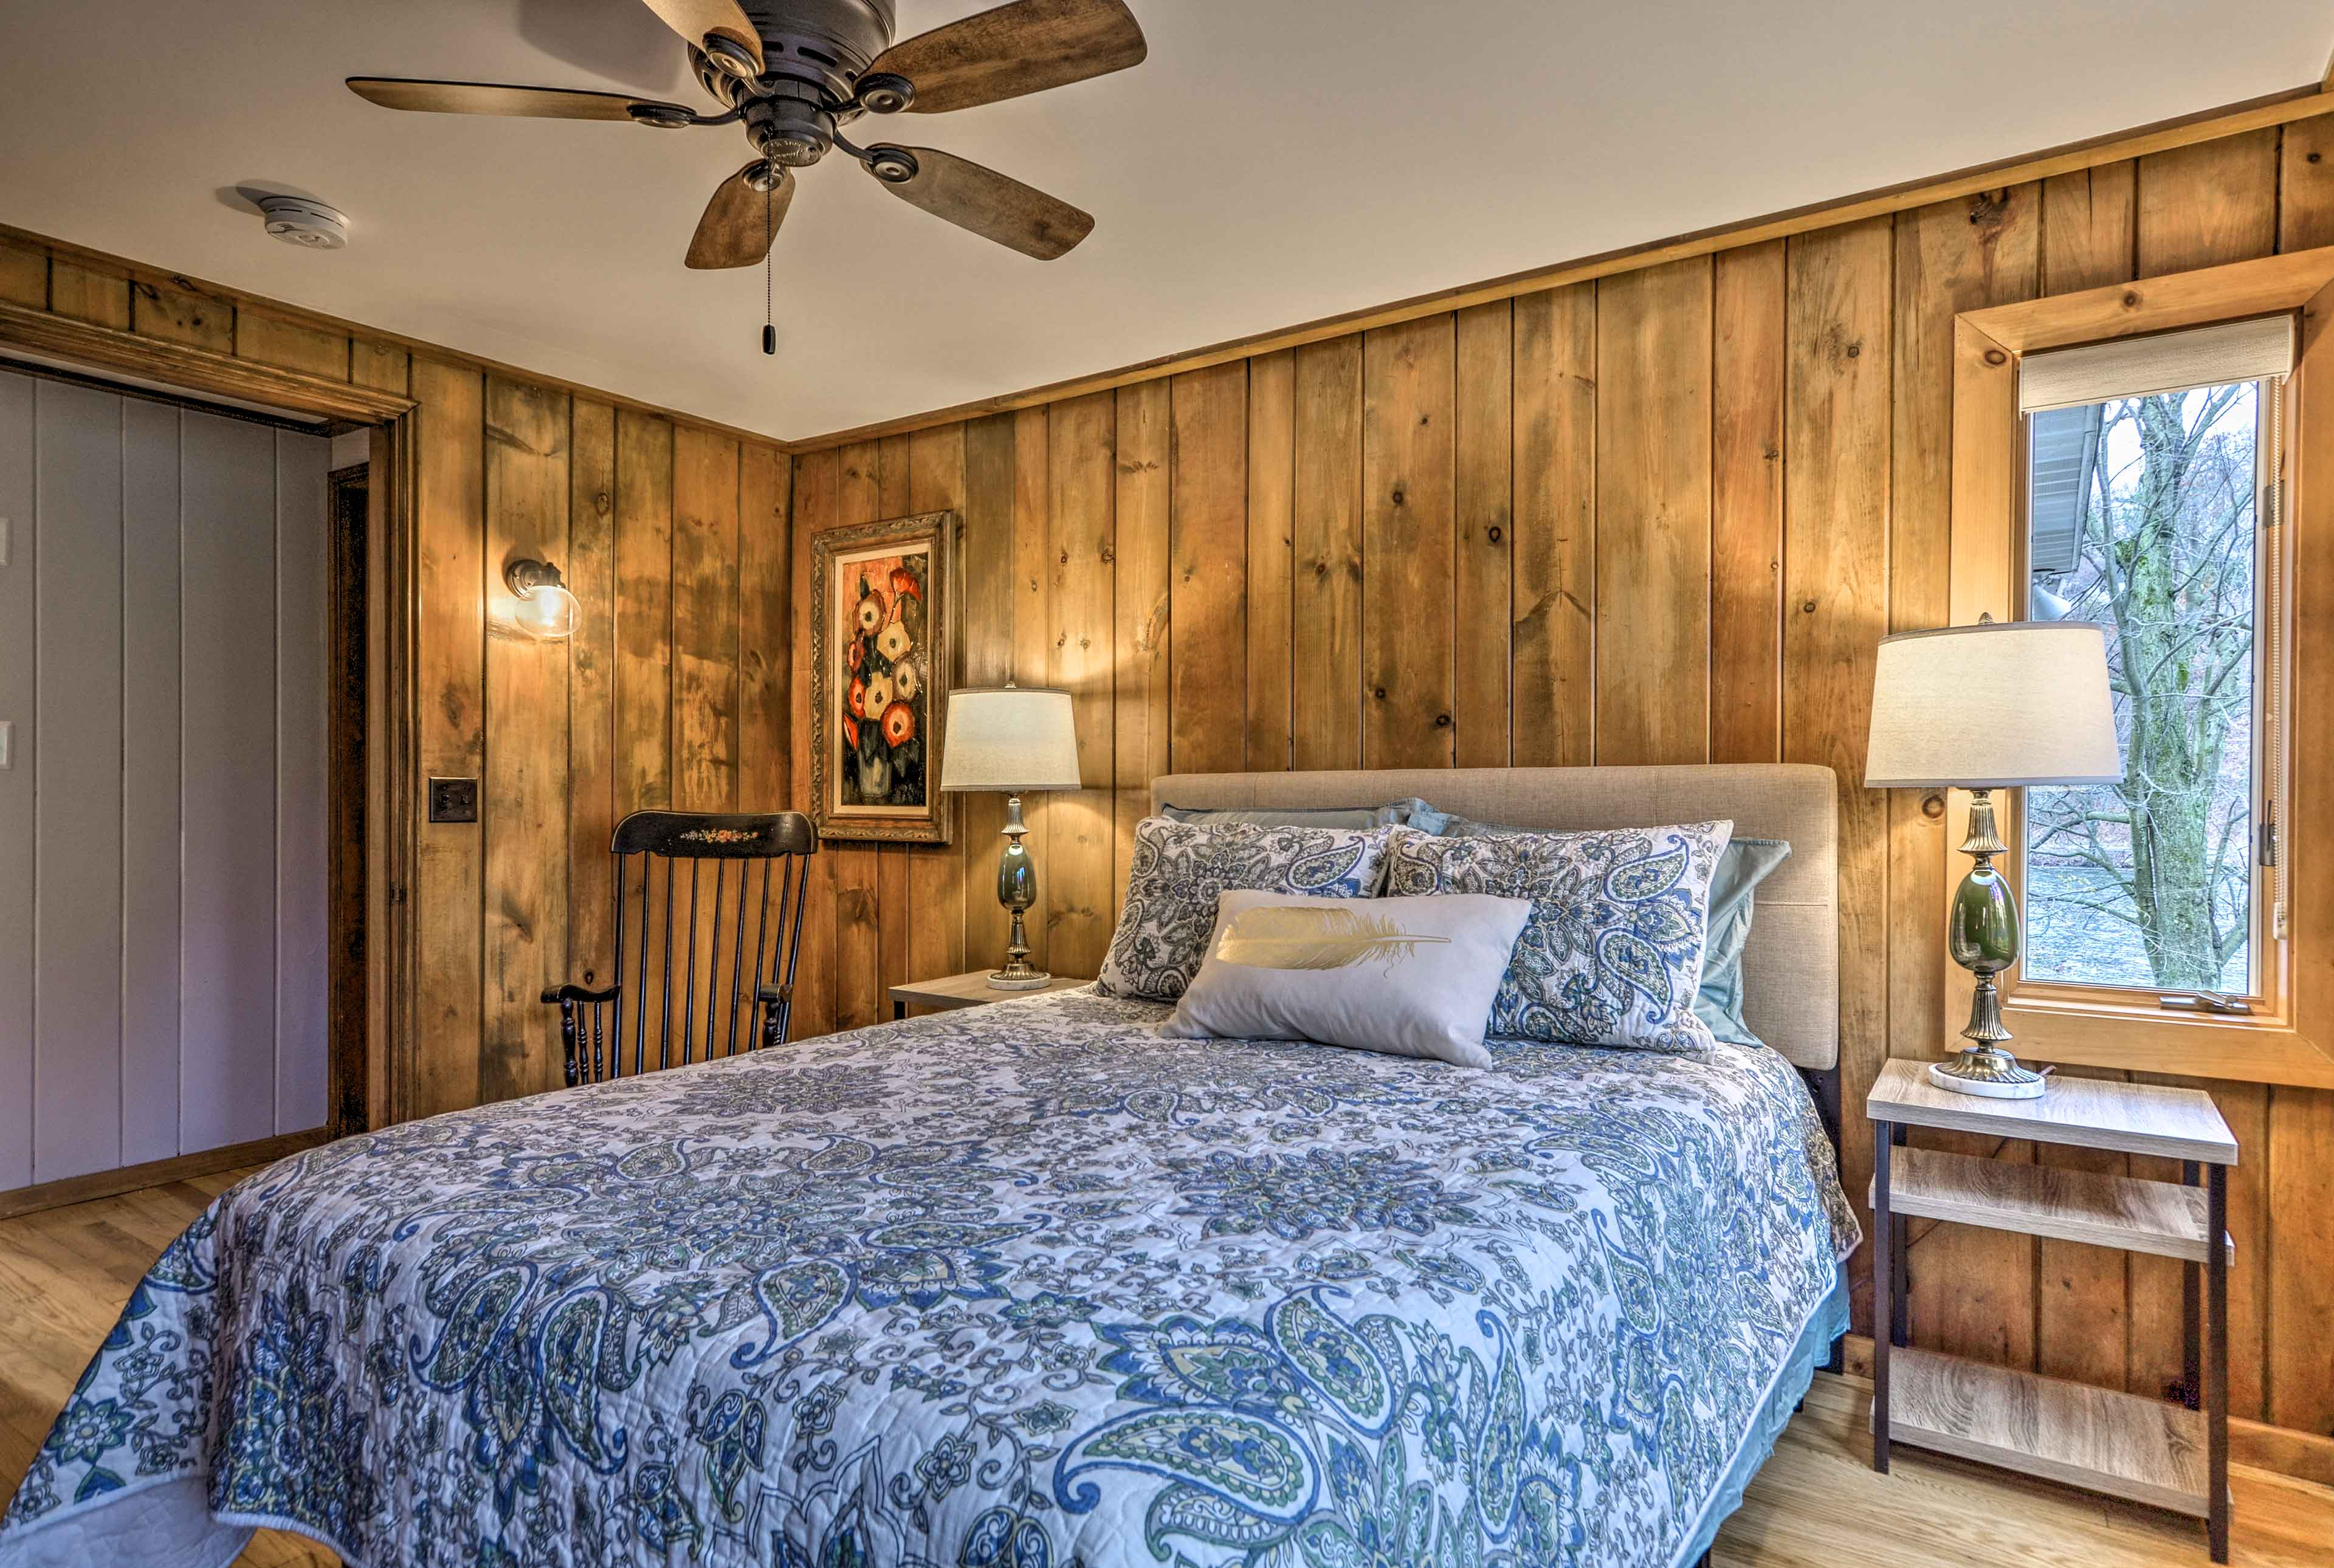 Wake up to stunning views from the comfort of the queen bed.